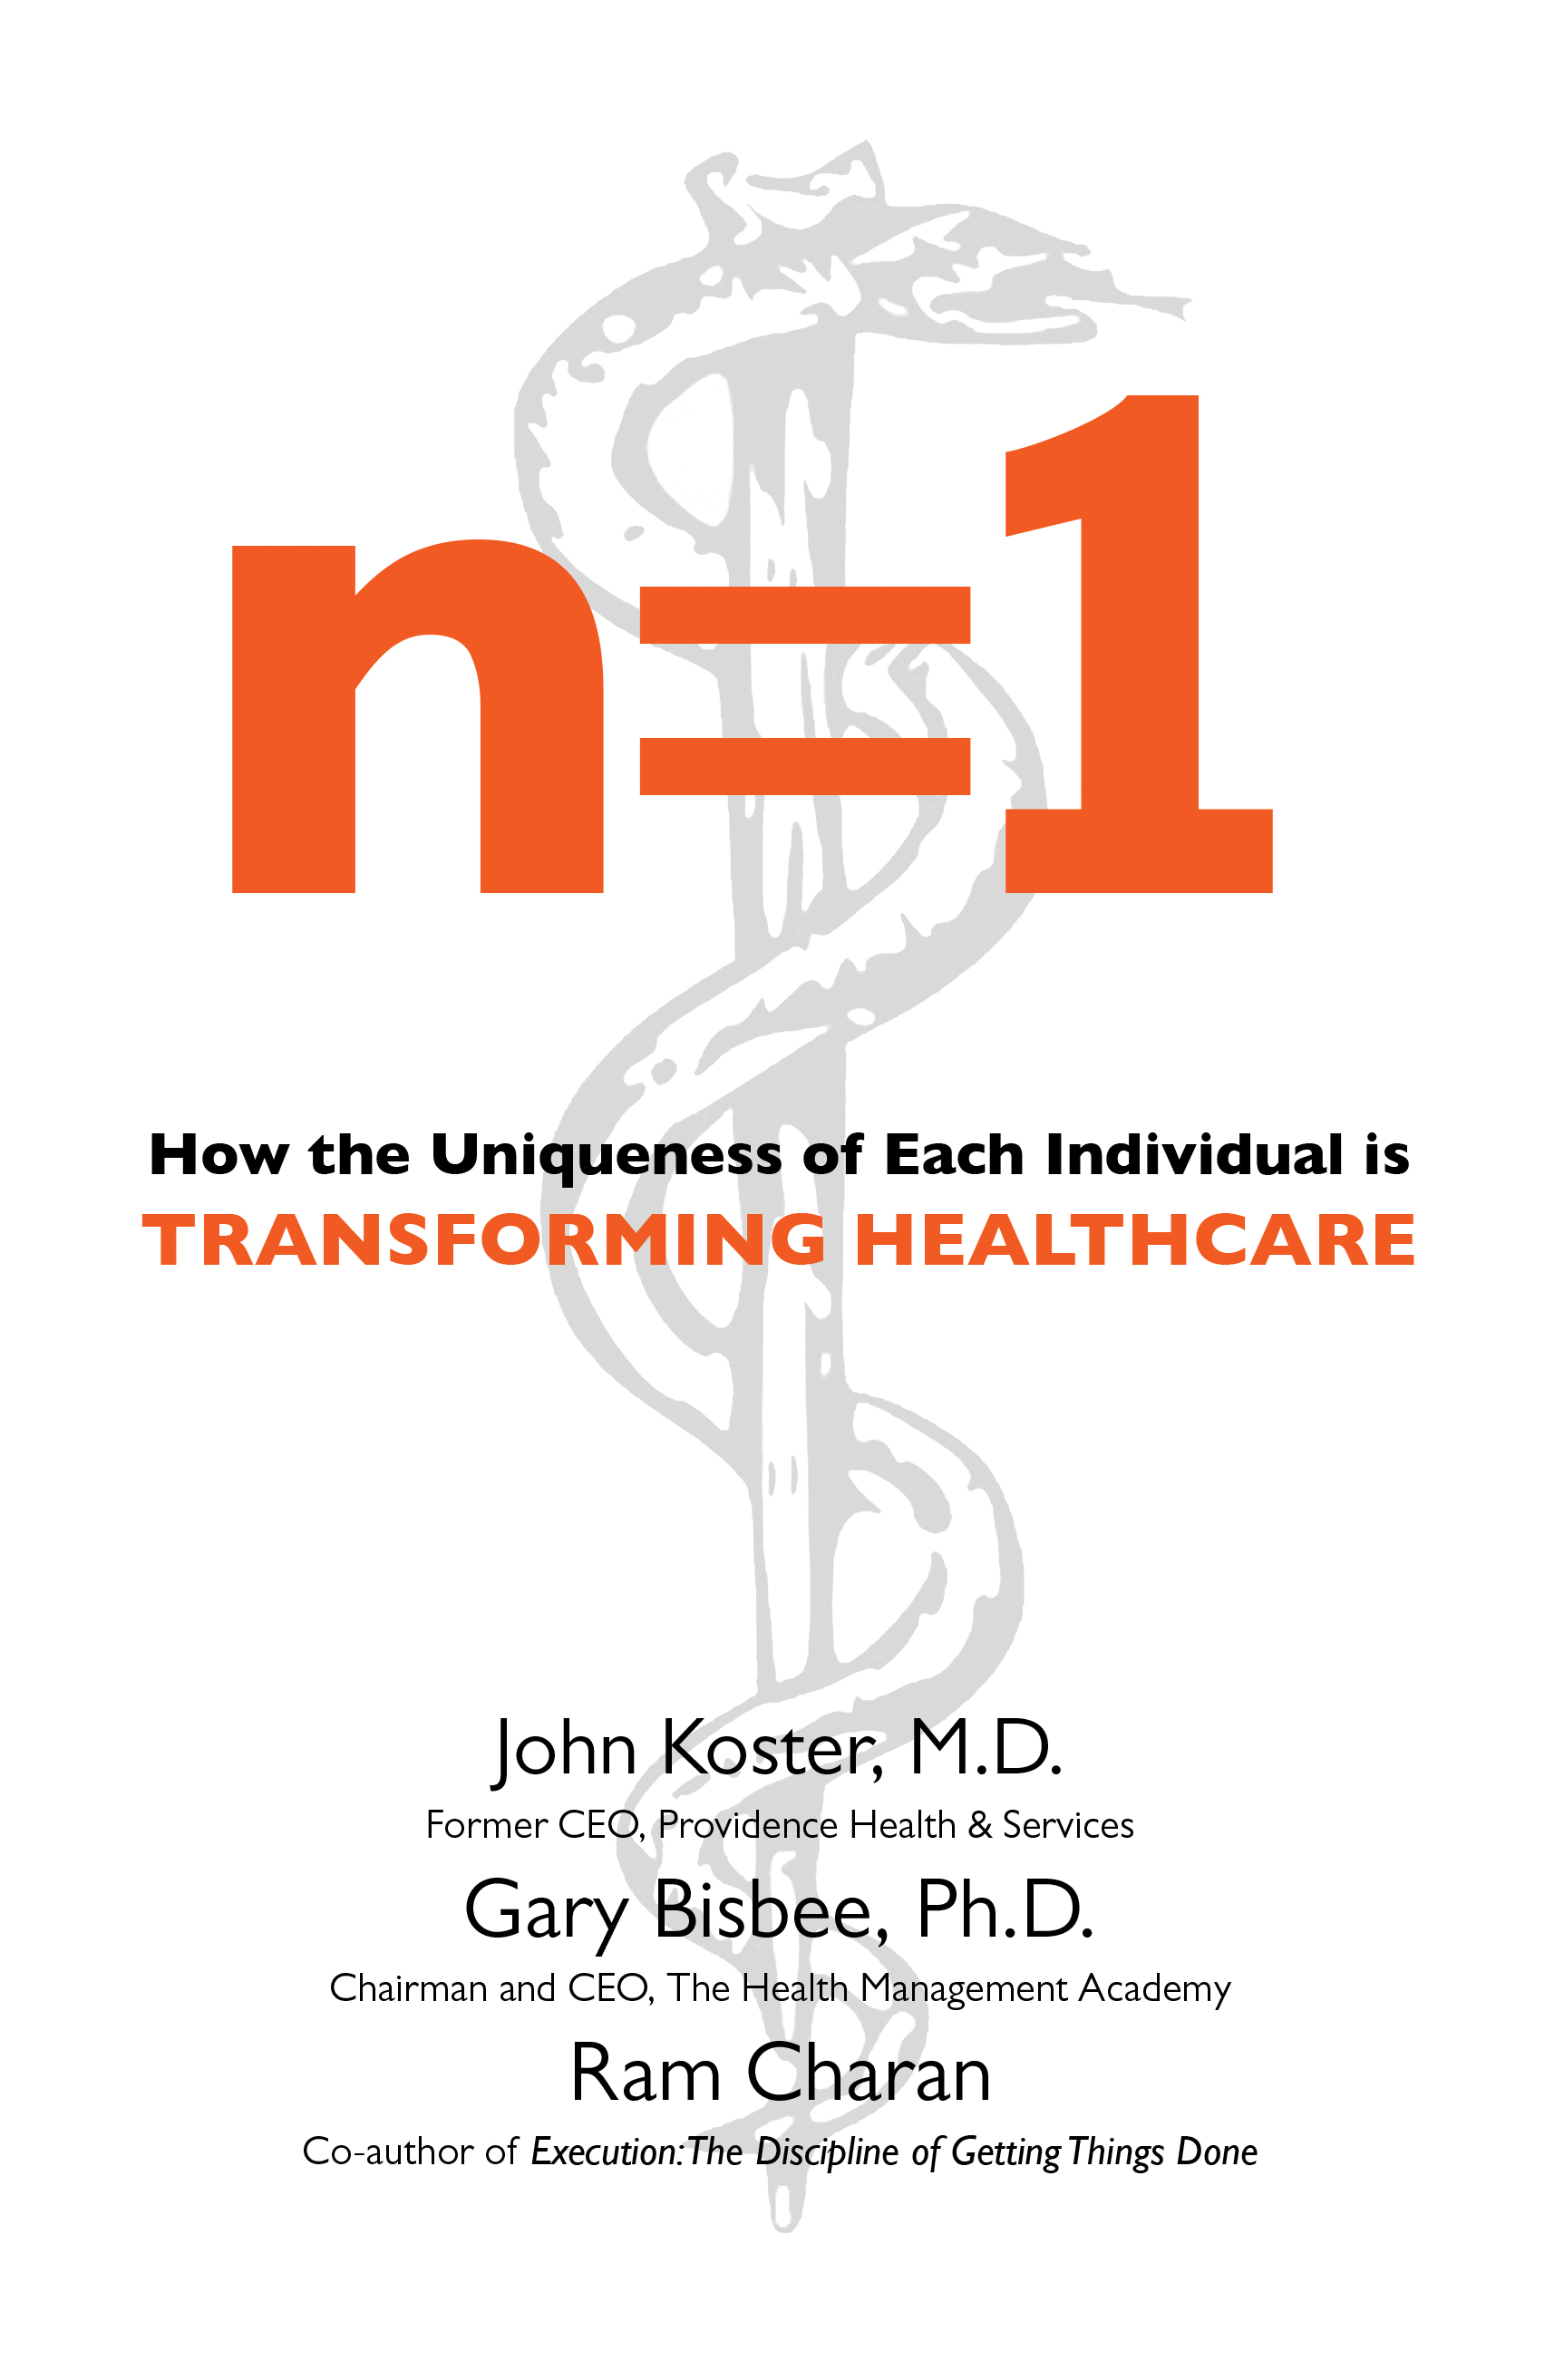 By John Koster, Md, Gary Bisbee, Phd, Ram Charan Hardcover €� 216 Pages  €� 9781632260185 €� January 27, 2015 €� $2495 Ebook €� Isbn  9781632260192 €�